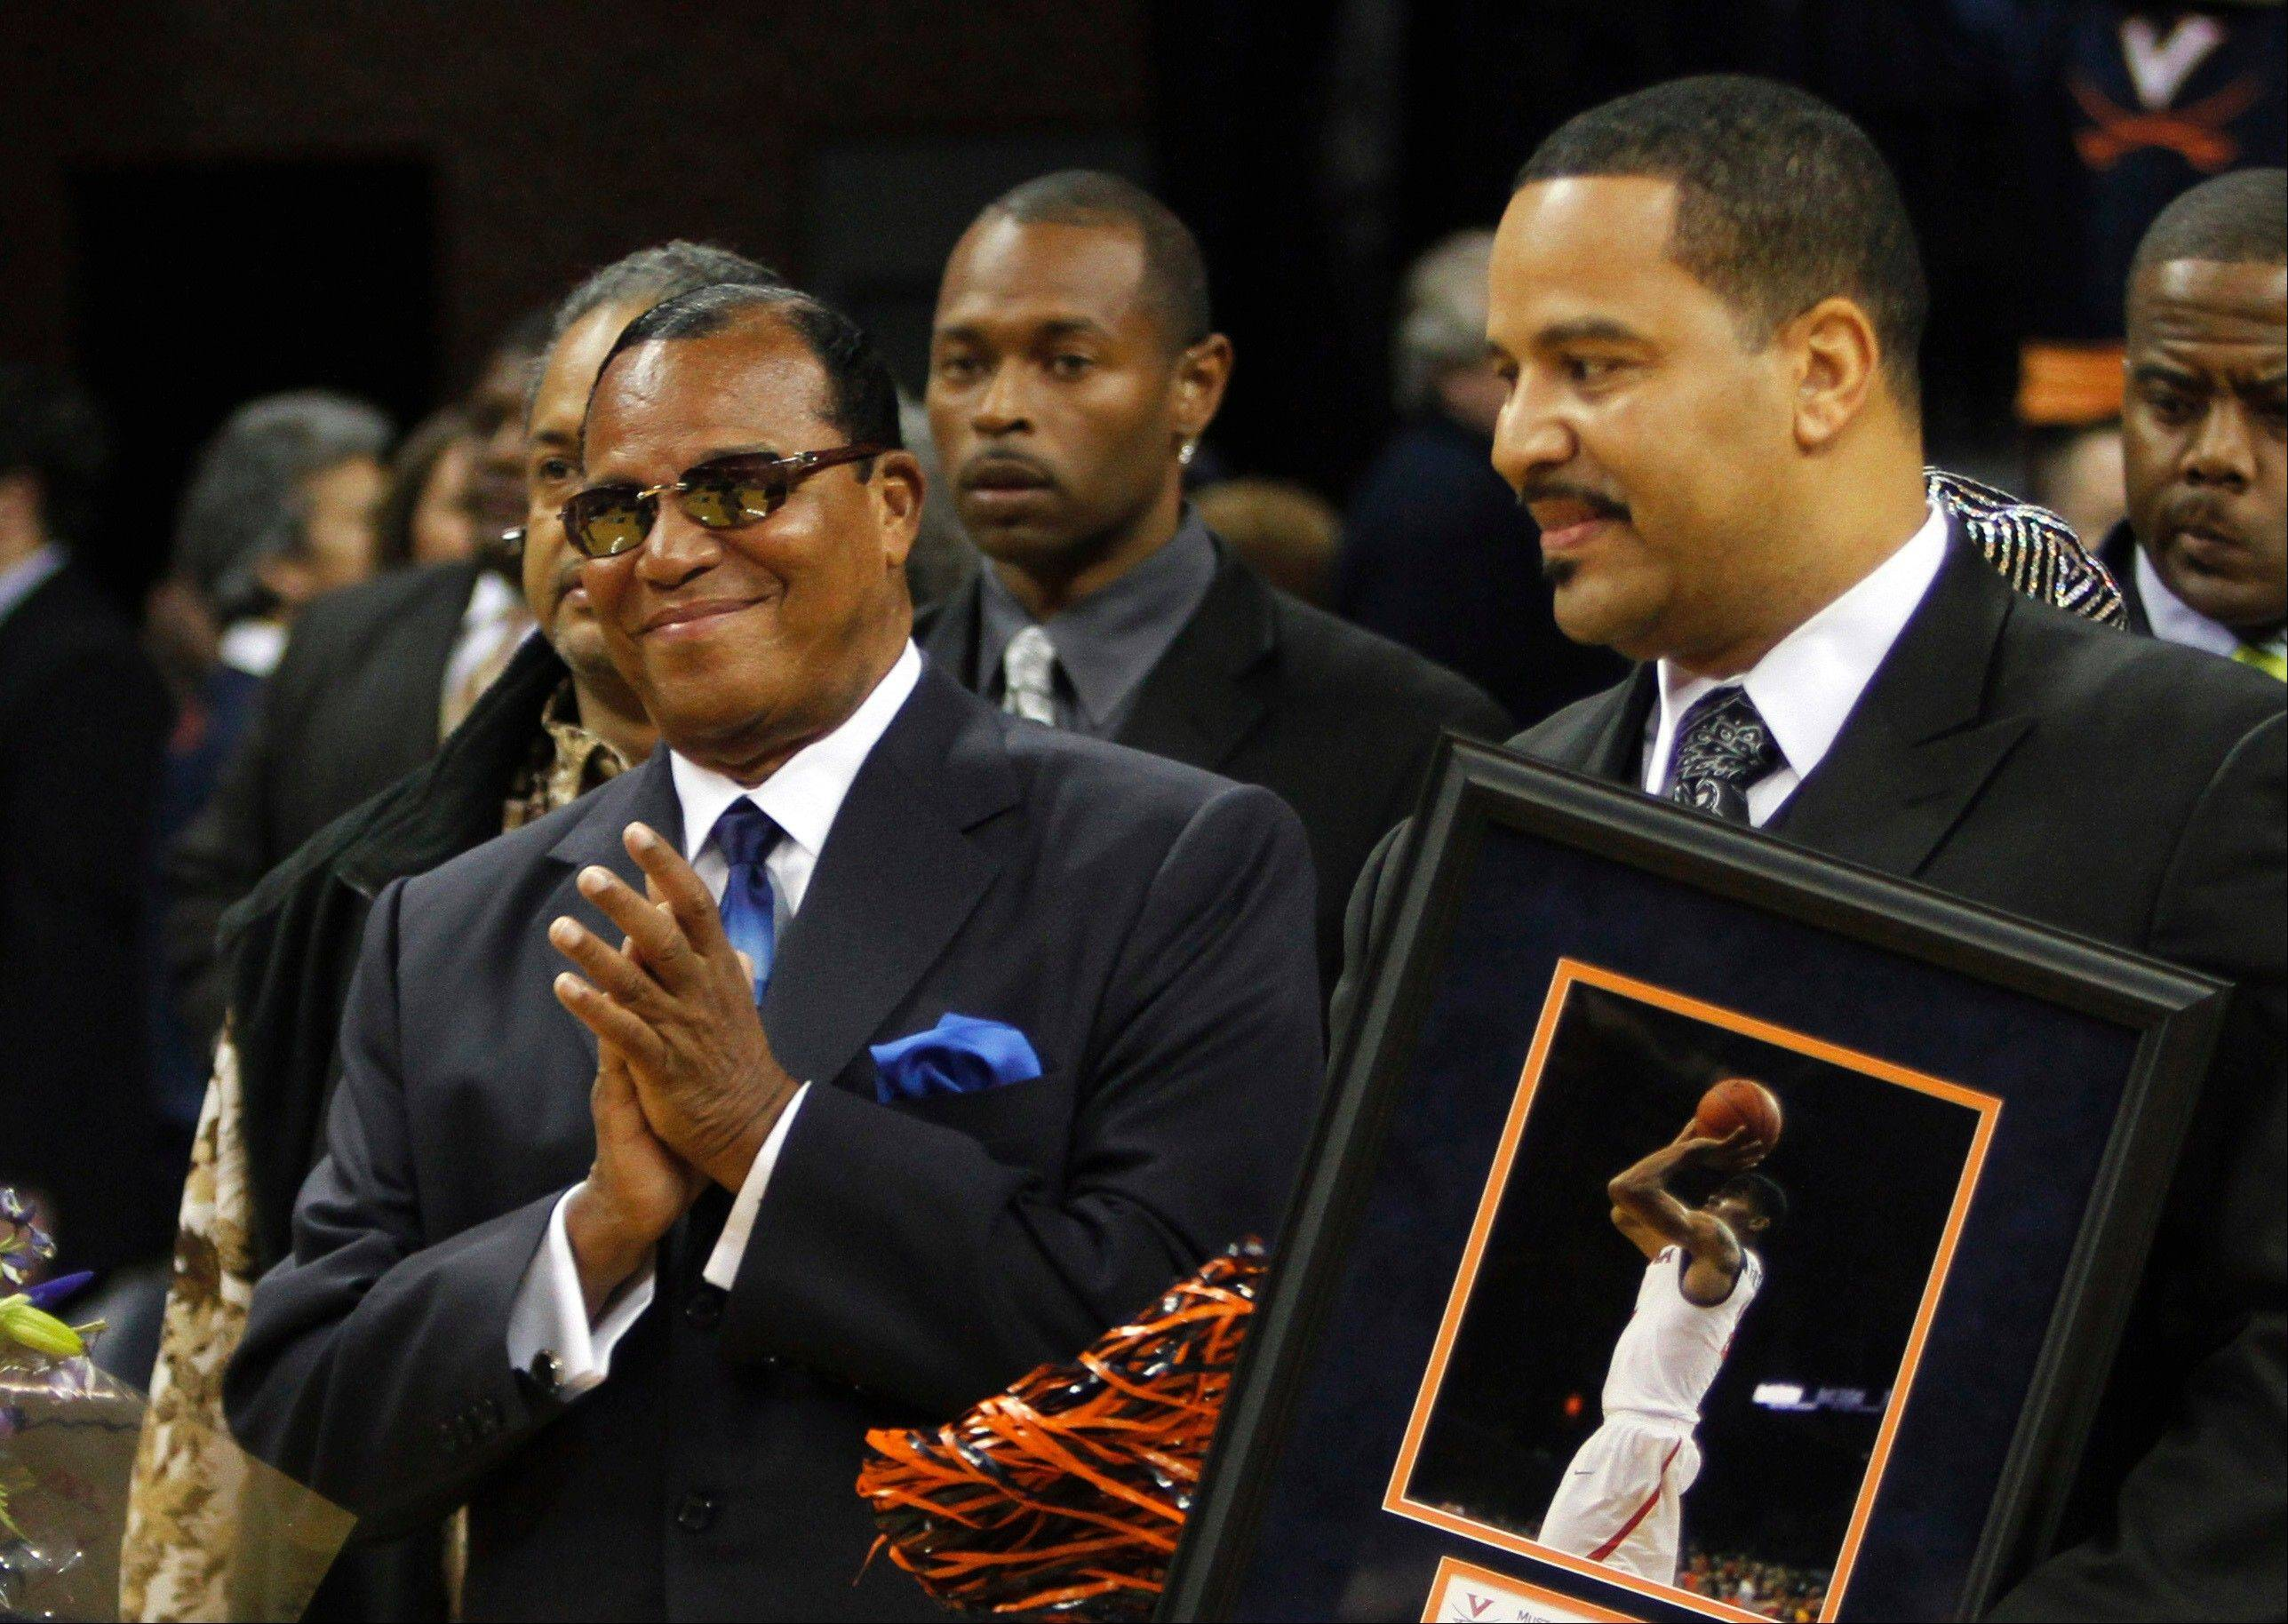 Nation of Islam Minister Louis Farrakhan, left, and son Mustapha Farrakhan attend a ceremony in 2011 honoring University of Virginia seniors, including Mustapha's son, at a college basketball game.